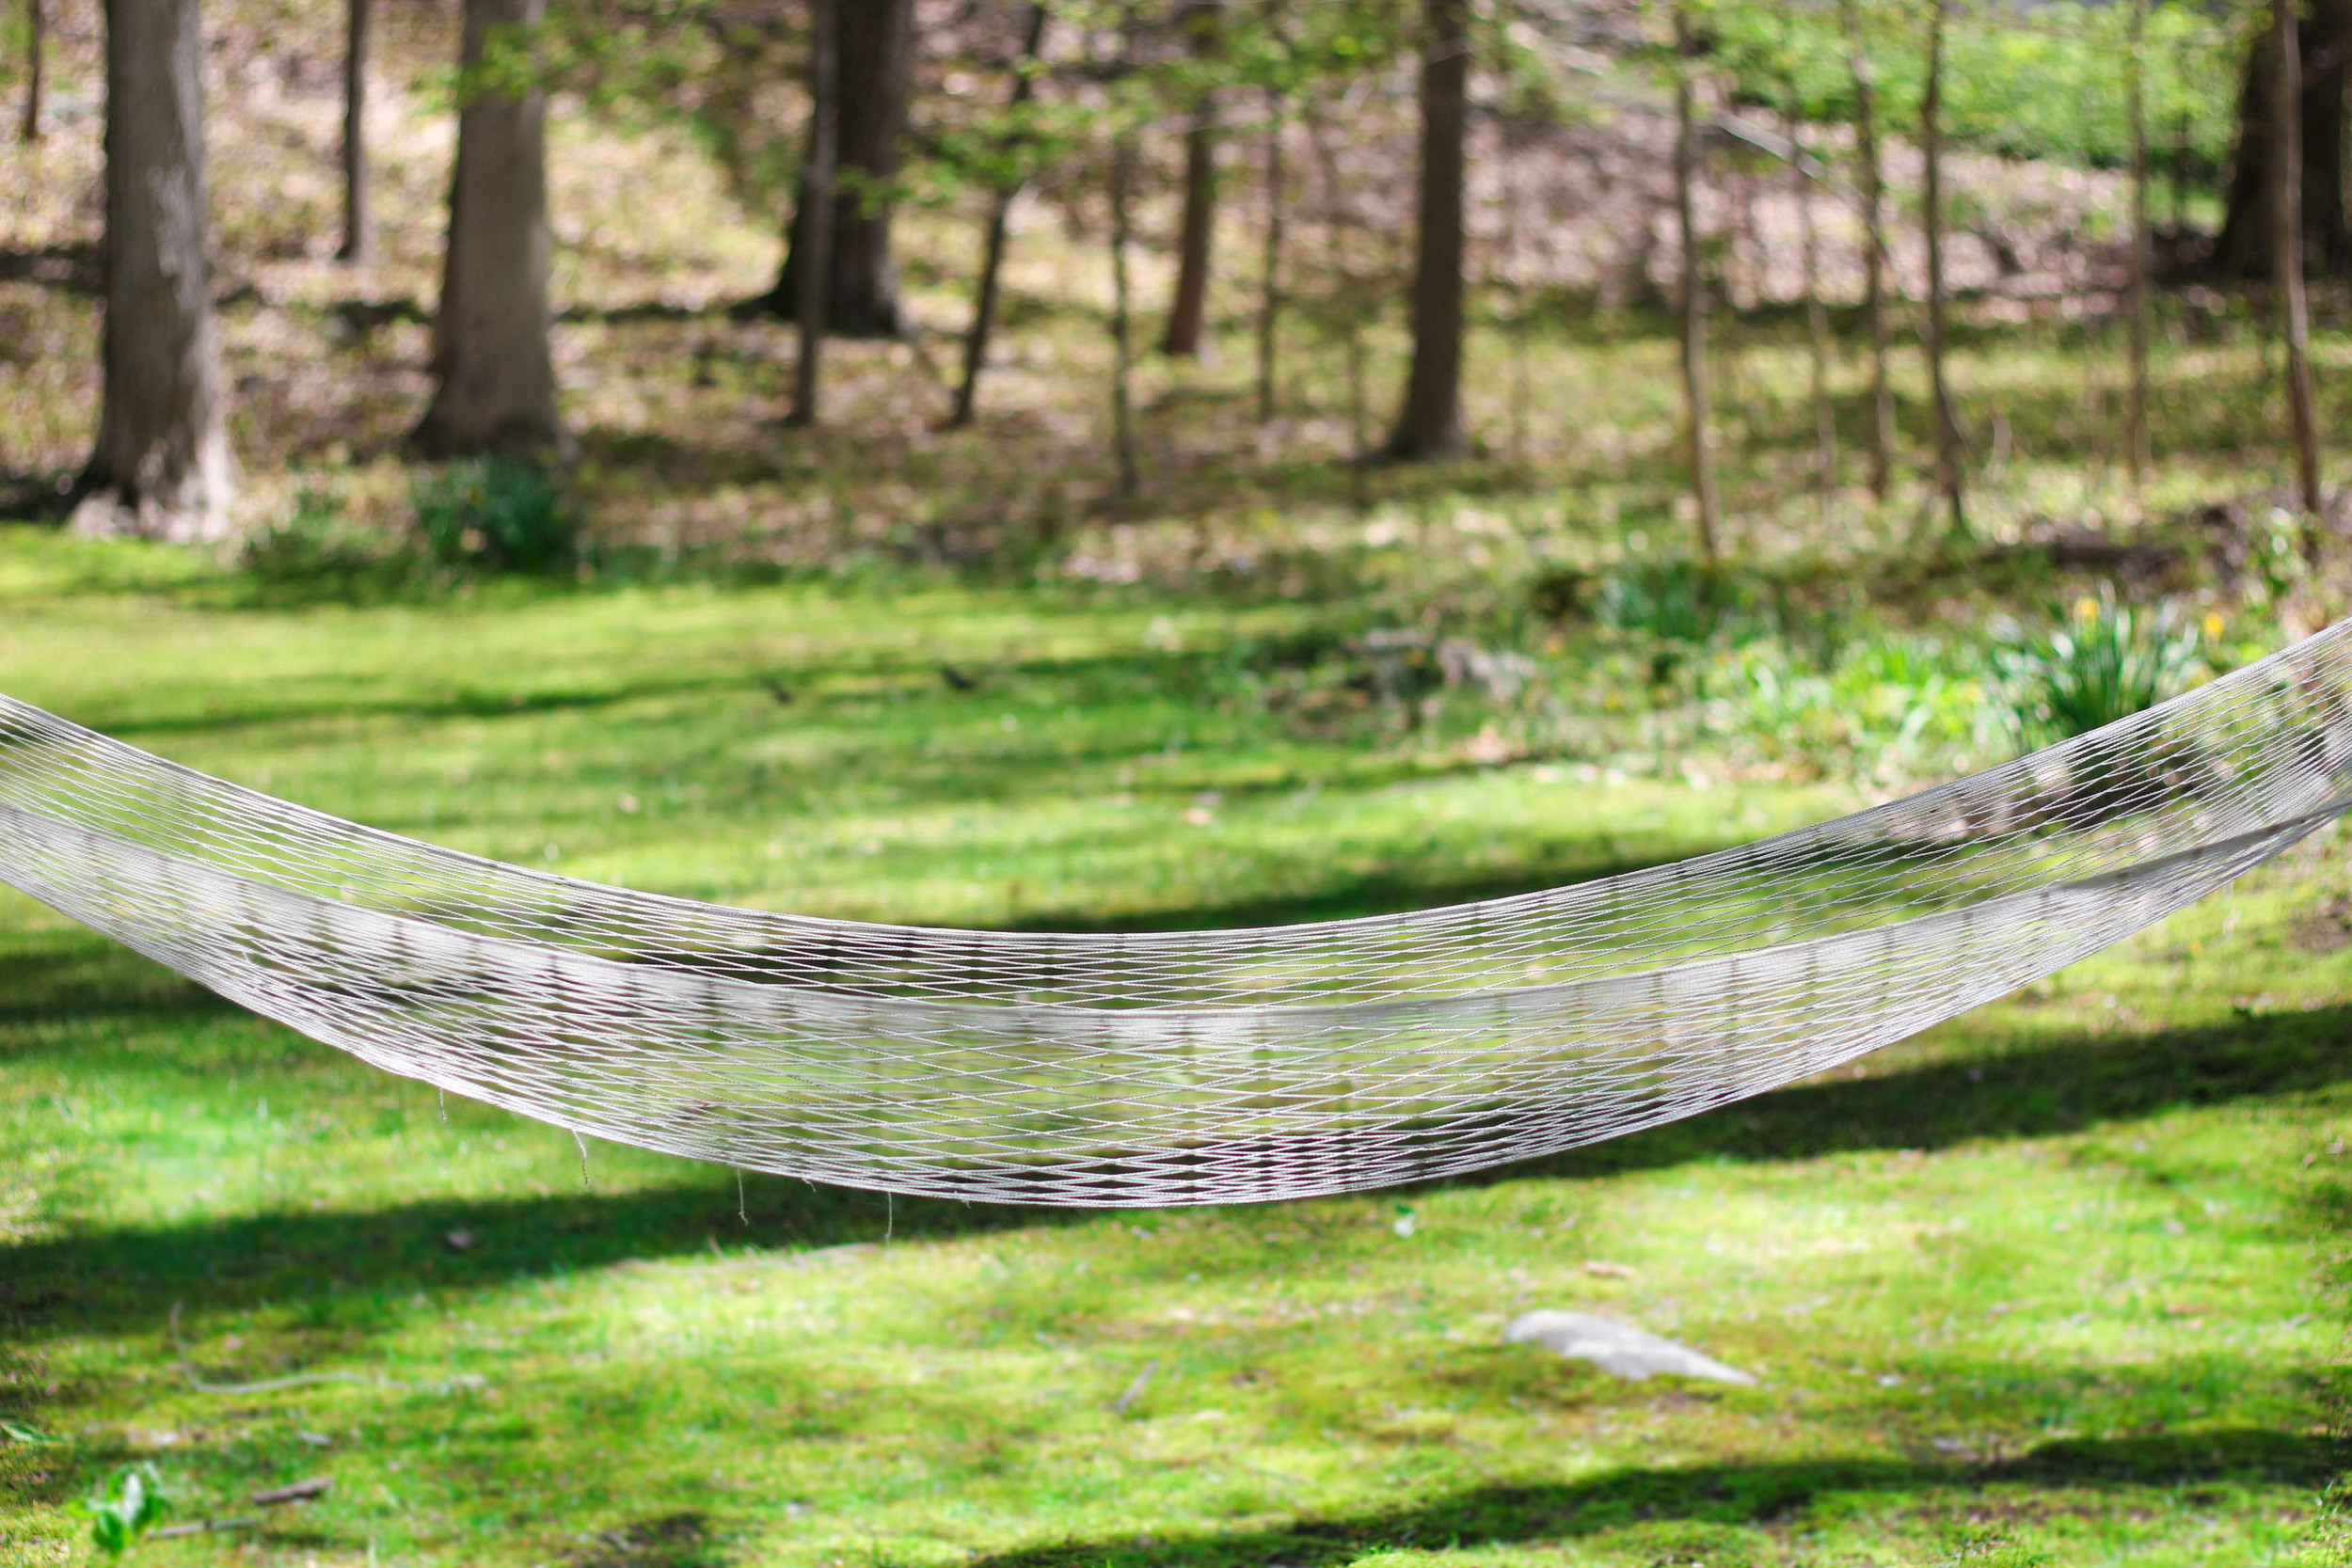 hammock in our backyard, the perfect reading spot